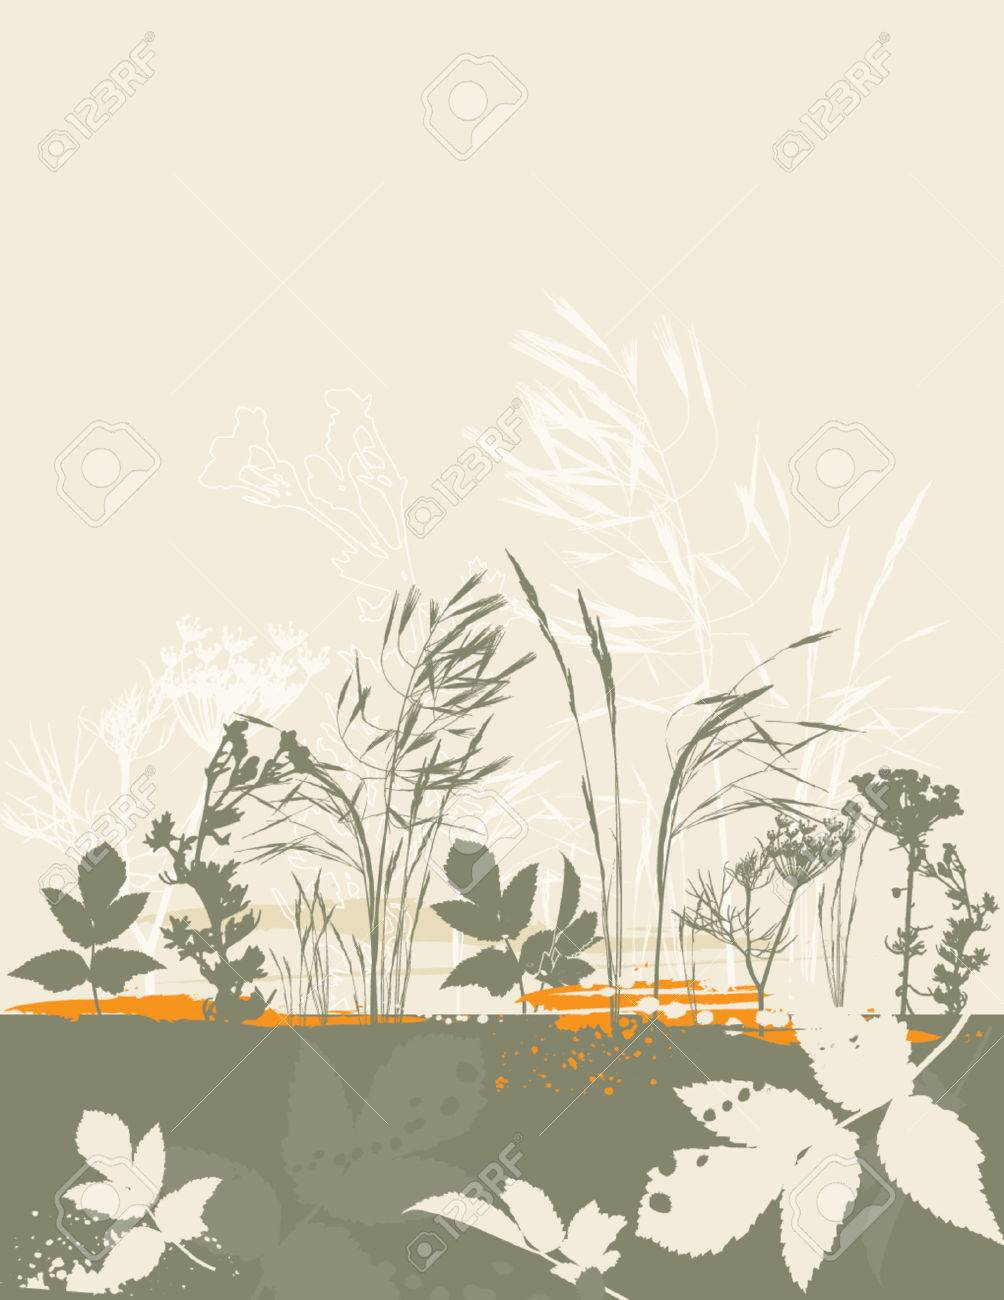 leaf, dill, crop, stem, corn, herb, green, curve, grass, shape, color, plant, stalk, flower, vector, fennel, orange, season, design, grunge, nature, natural, graphic, drawing, contour, clipart, scented, tracing, cartoon, abstract, separable, decoration, creativity, silhouette, composition, stylization, illustration Stock Vector - 1155967